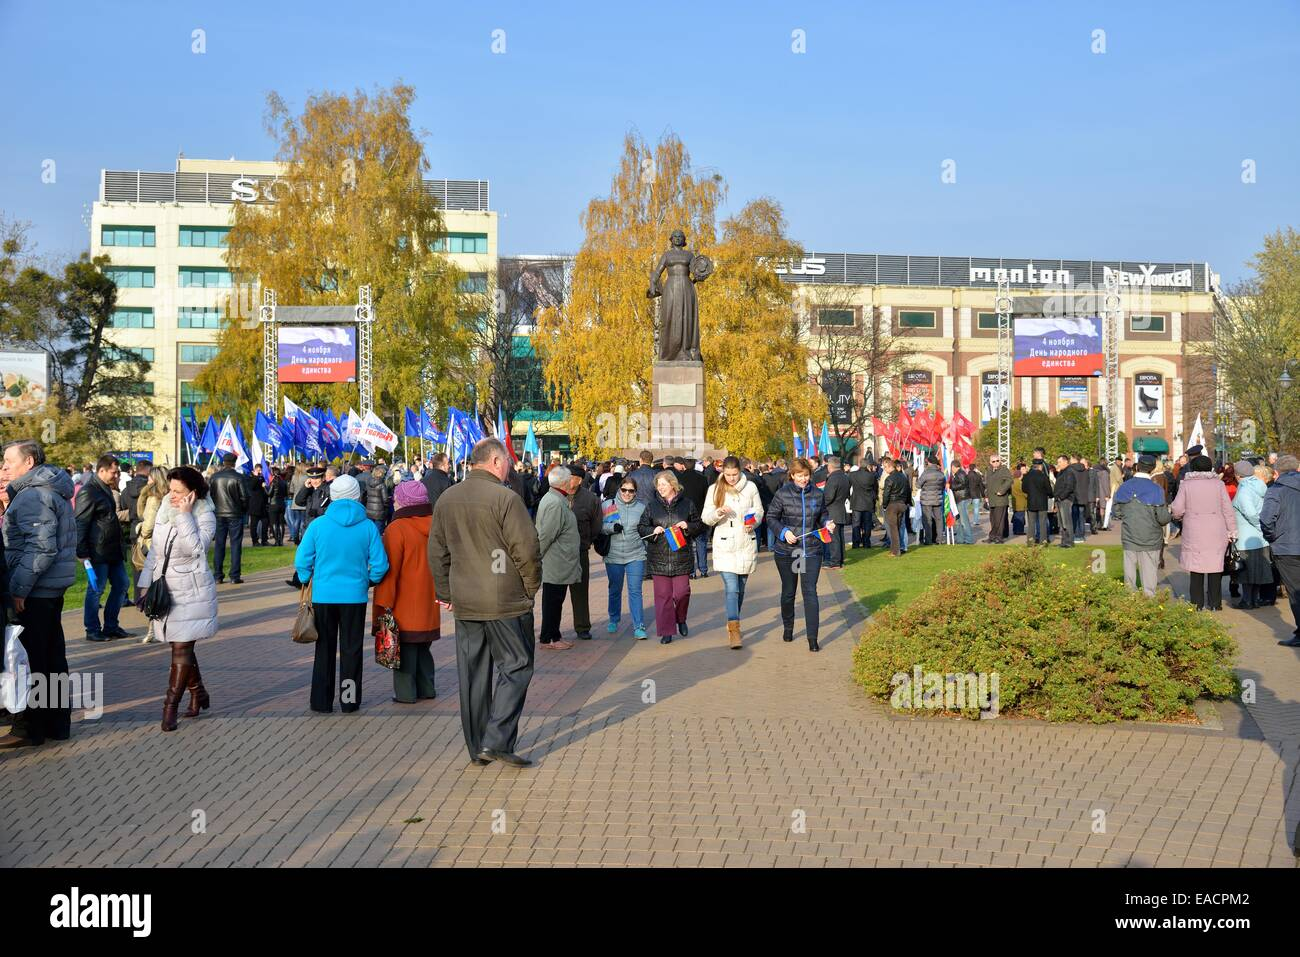 Peoples in a center of a city for a rally honouring the national Unity Day - Stock Image